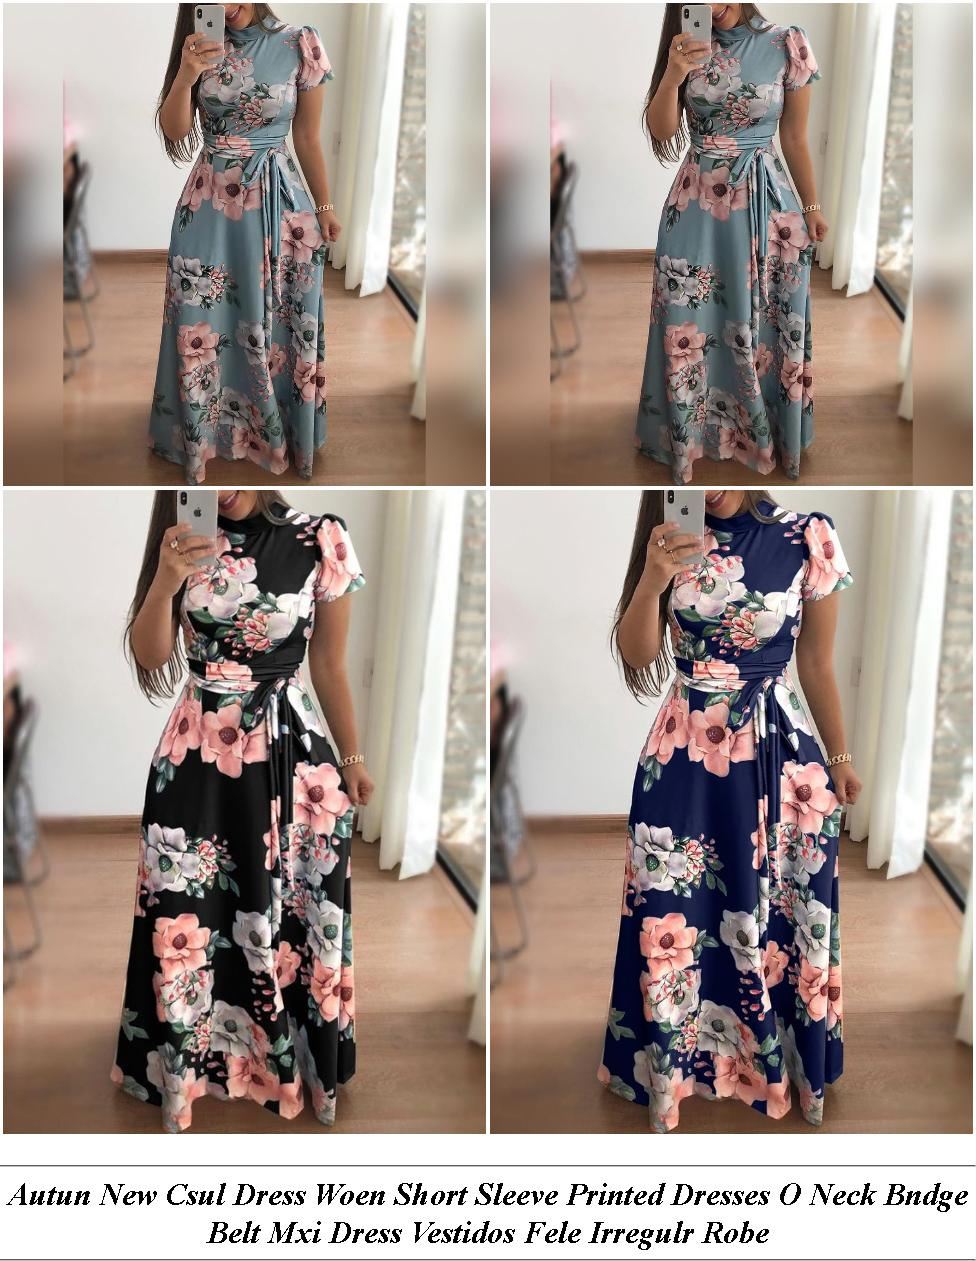 Semi Formal Dresses For Women - Clearance Sale Near Me - Gold Dress - Cheap Online Shopping Sites For Clothes